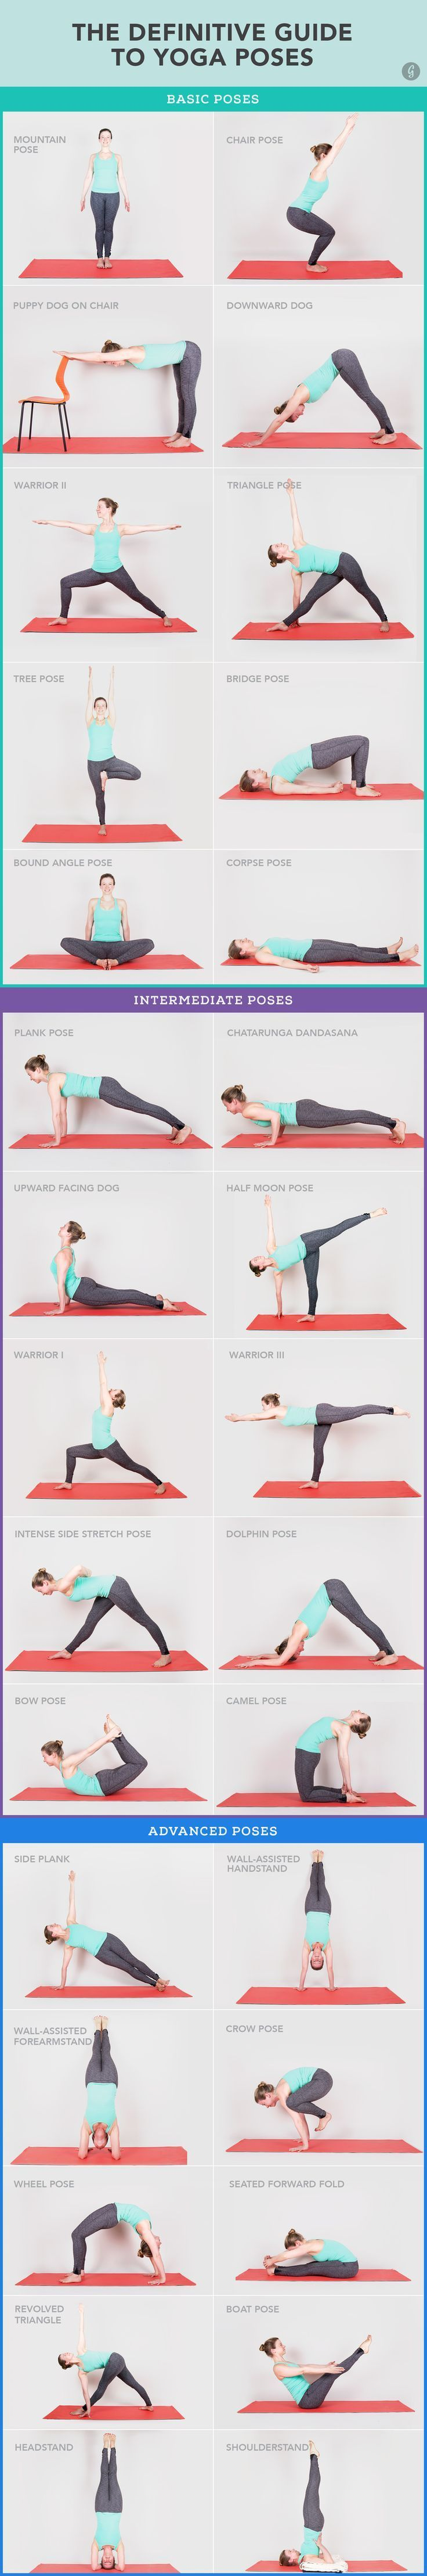 30 Yoga Poses You Really Need To Know #yoga #stretch #fitness